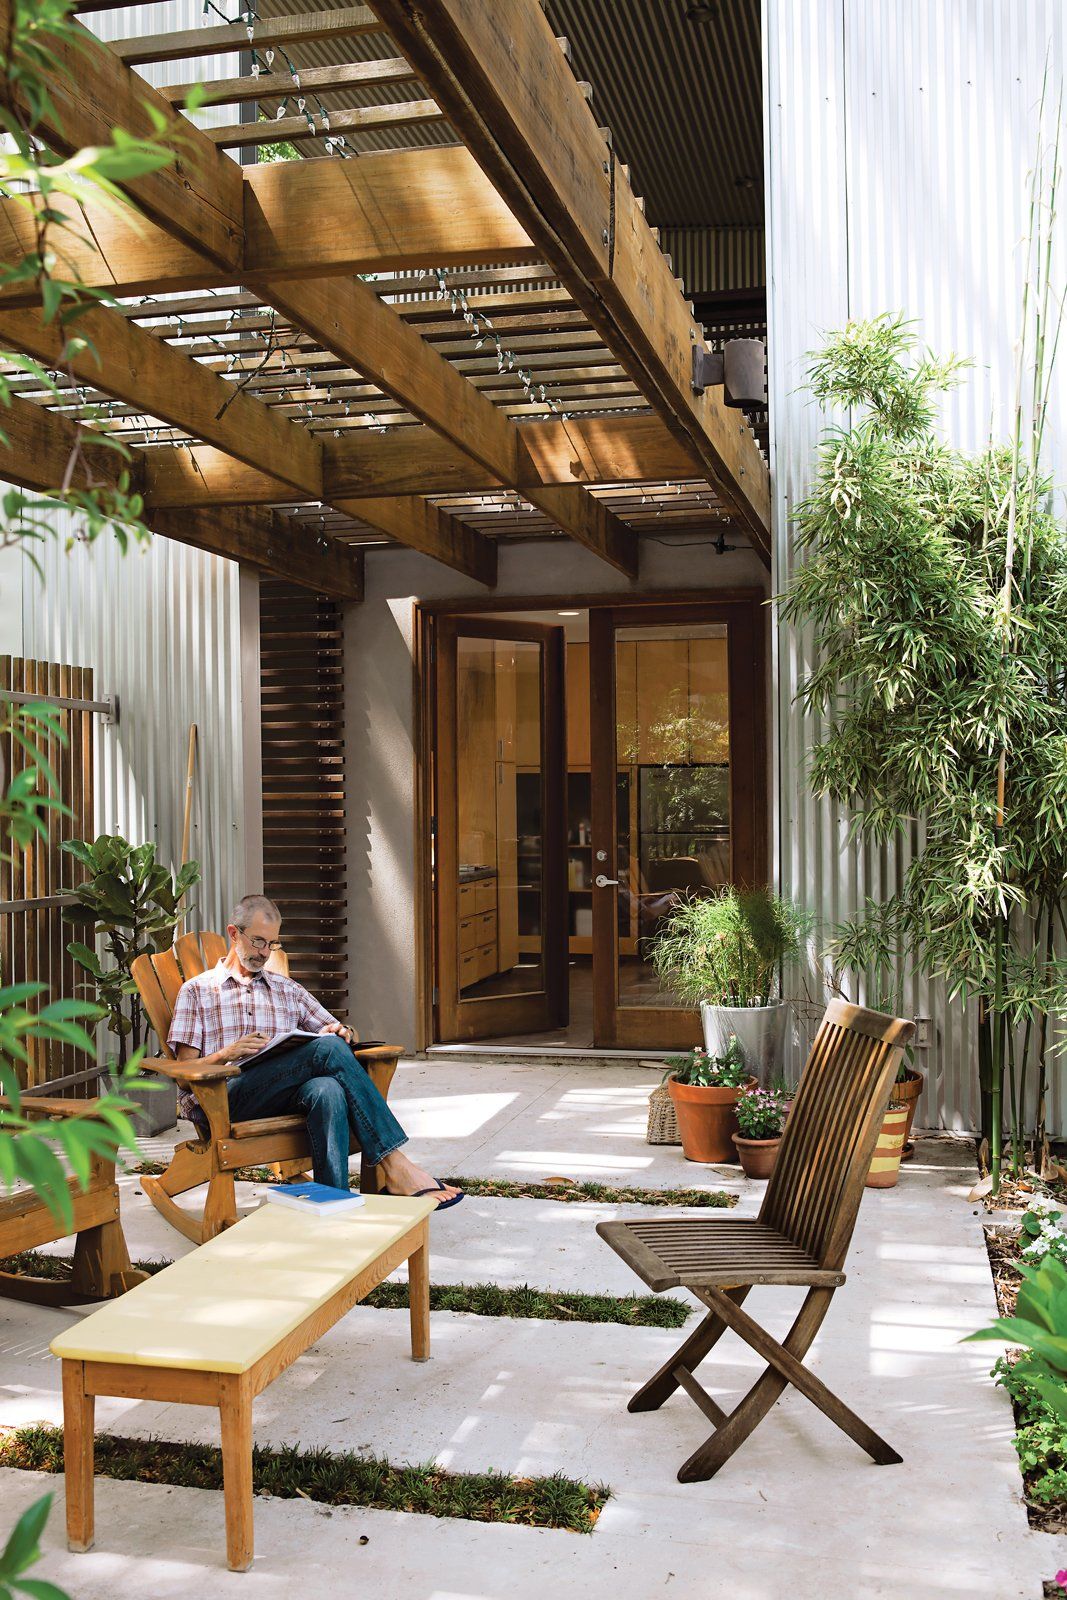 Outdoor, Back Yard, Small Patio, Porch, Deck, and Concrete Patio, Porch, Deck Moreland House  Homes from Rick Moreland Reads a Building